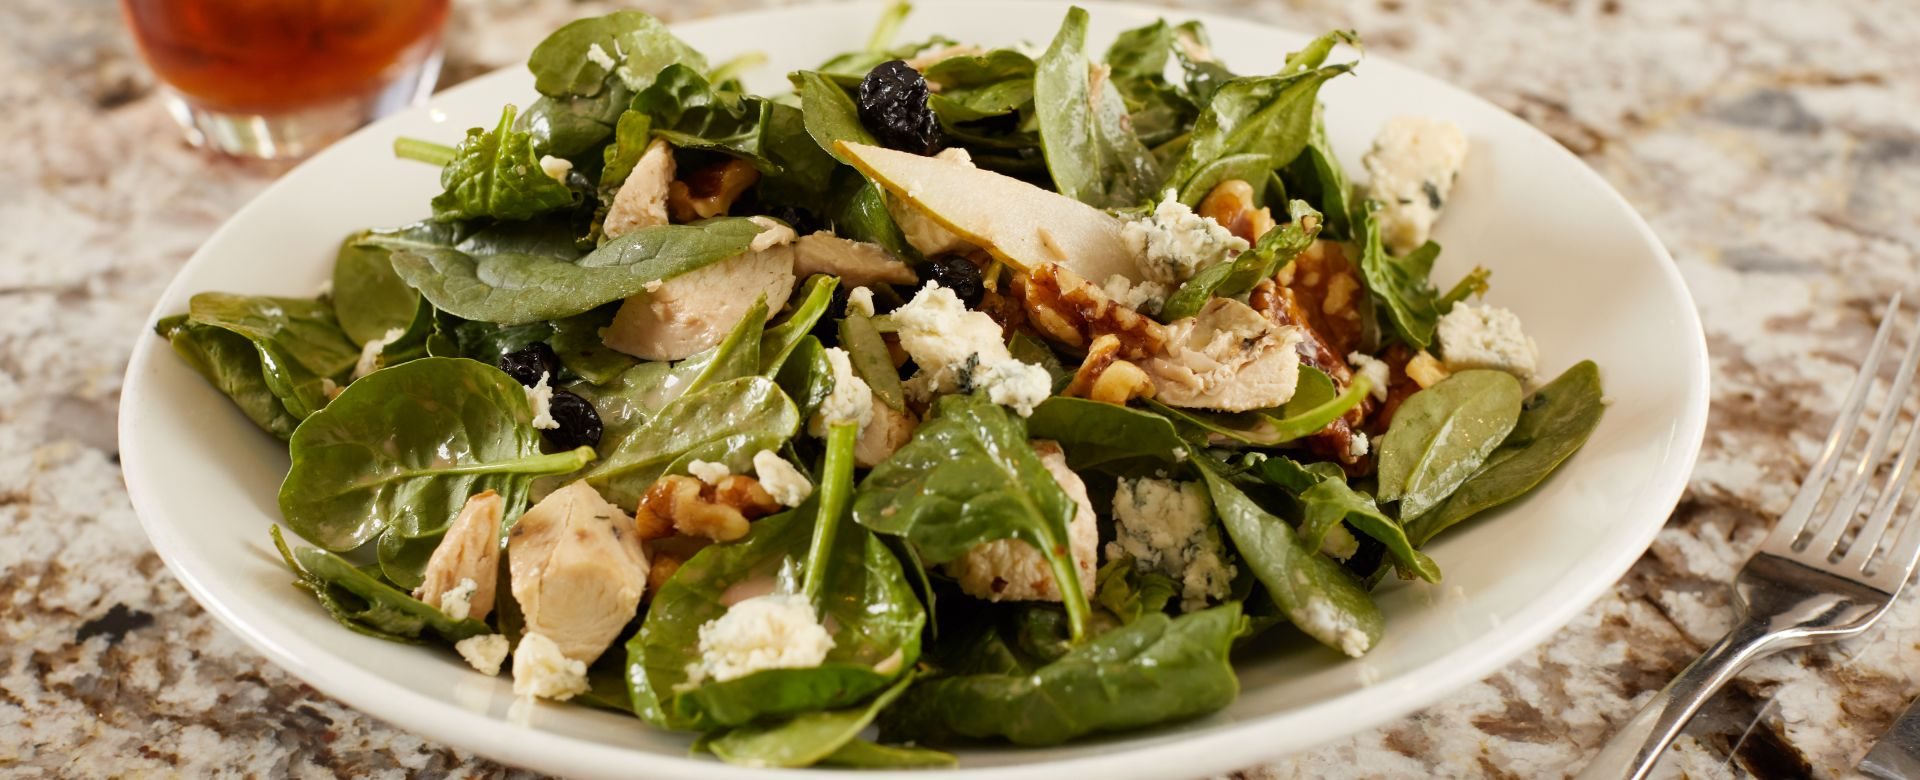 A spinach and chicken dish.